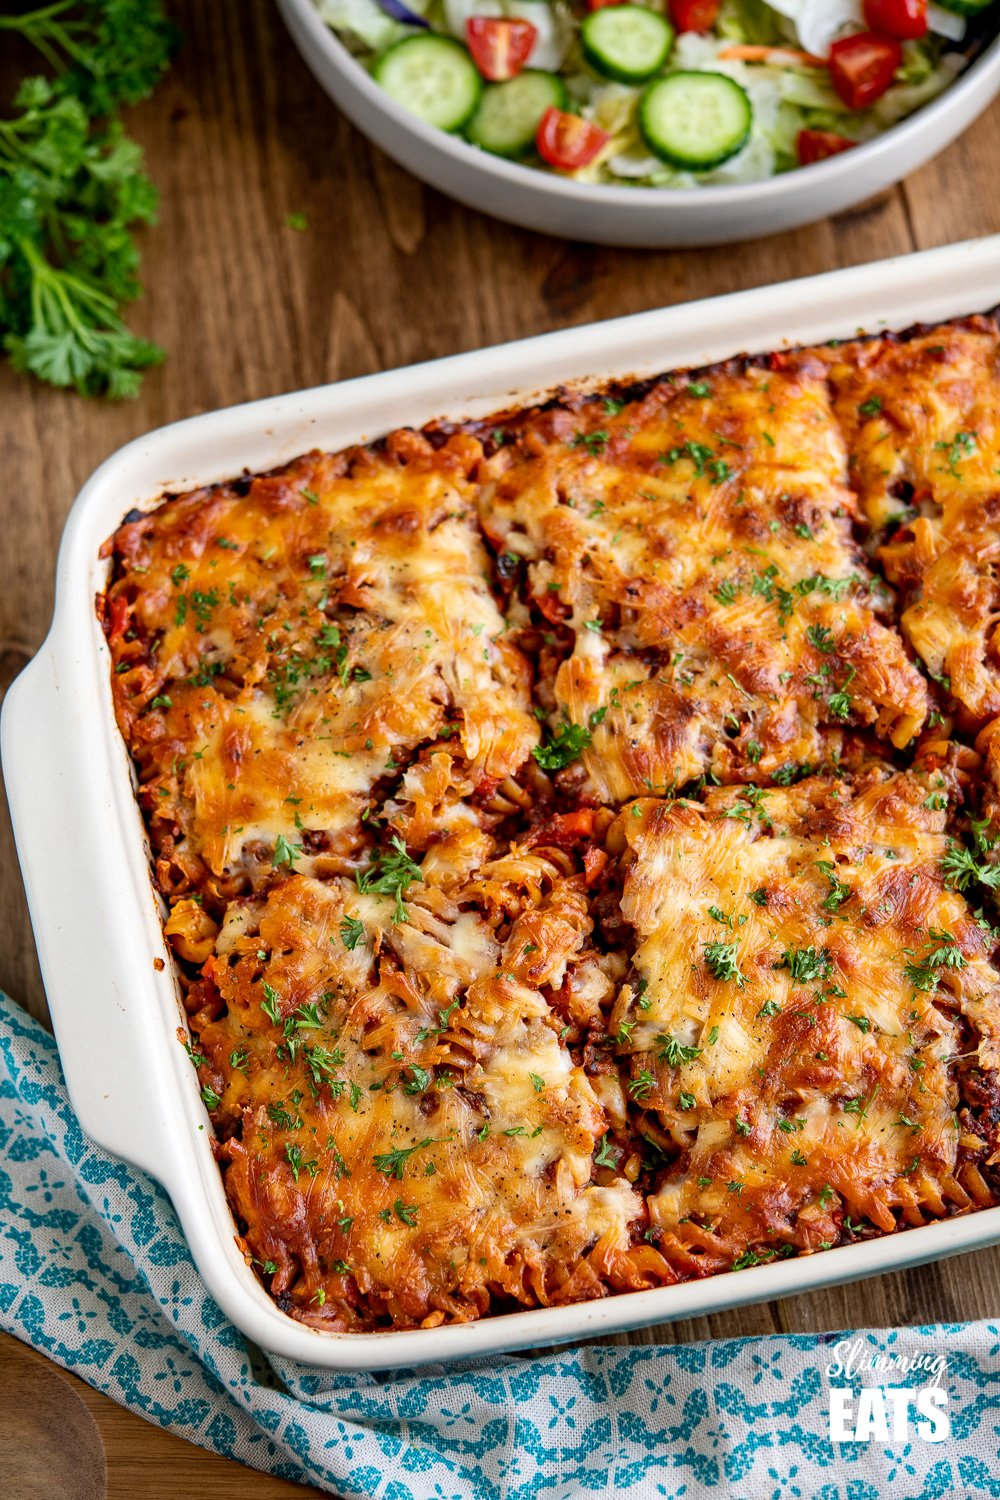 Syn Free Bolognese Pasta Bake in oven dish on wooden board with salad in a bowl